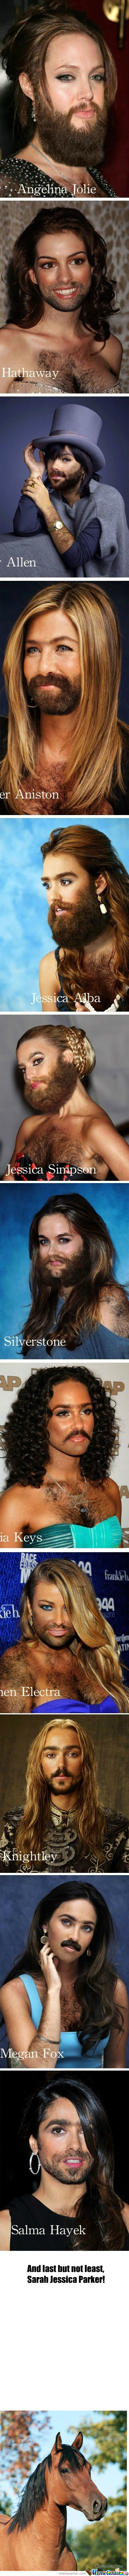 [RMX] Imagine Your Favorite Celebrity With A Full-Faced Beard! There You Go...